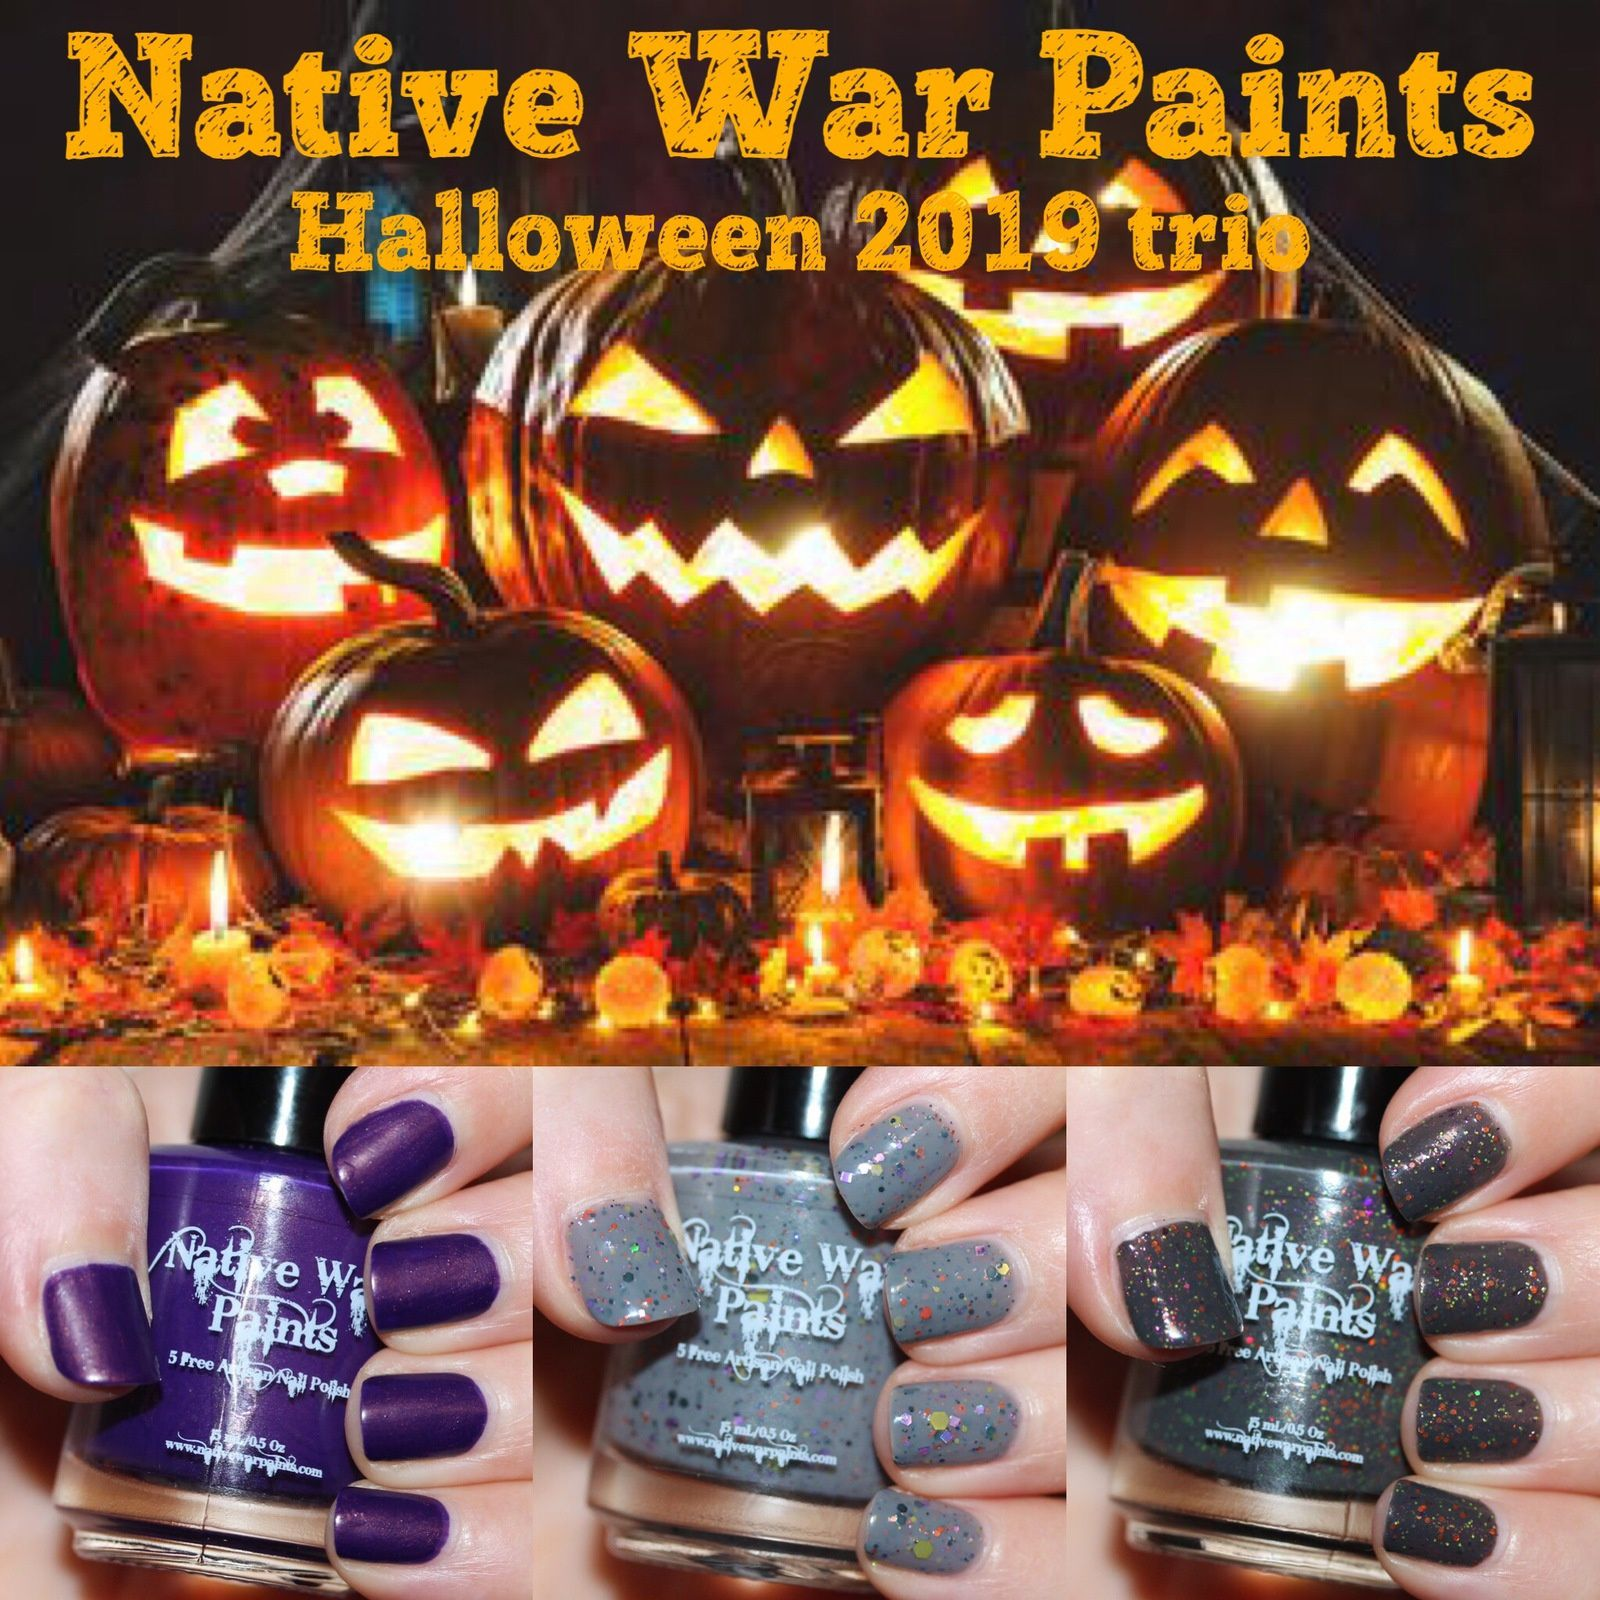 (These nail polish were sent for review by Native War Paints)